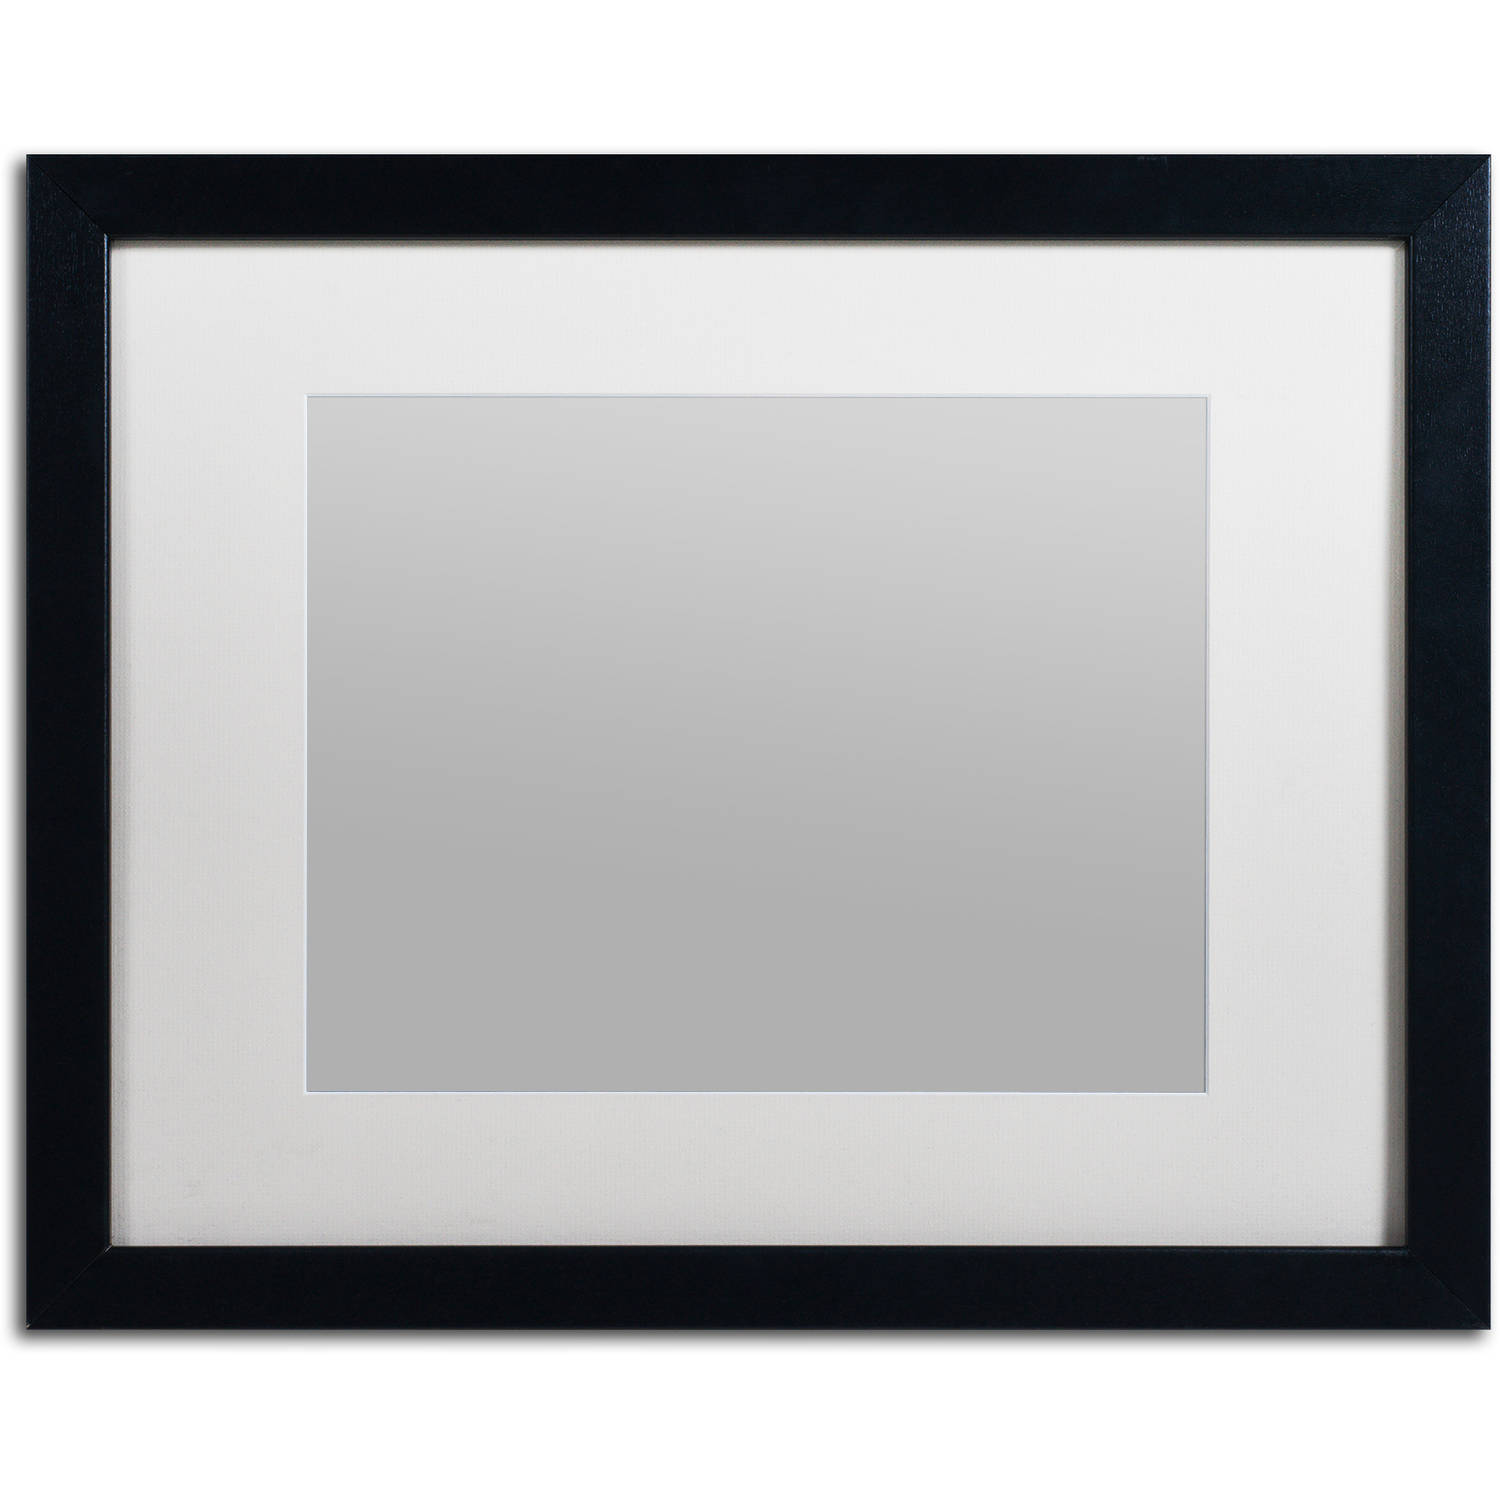 Trademark Fine Art Heavy Duty 16x20 Black Picture Frame